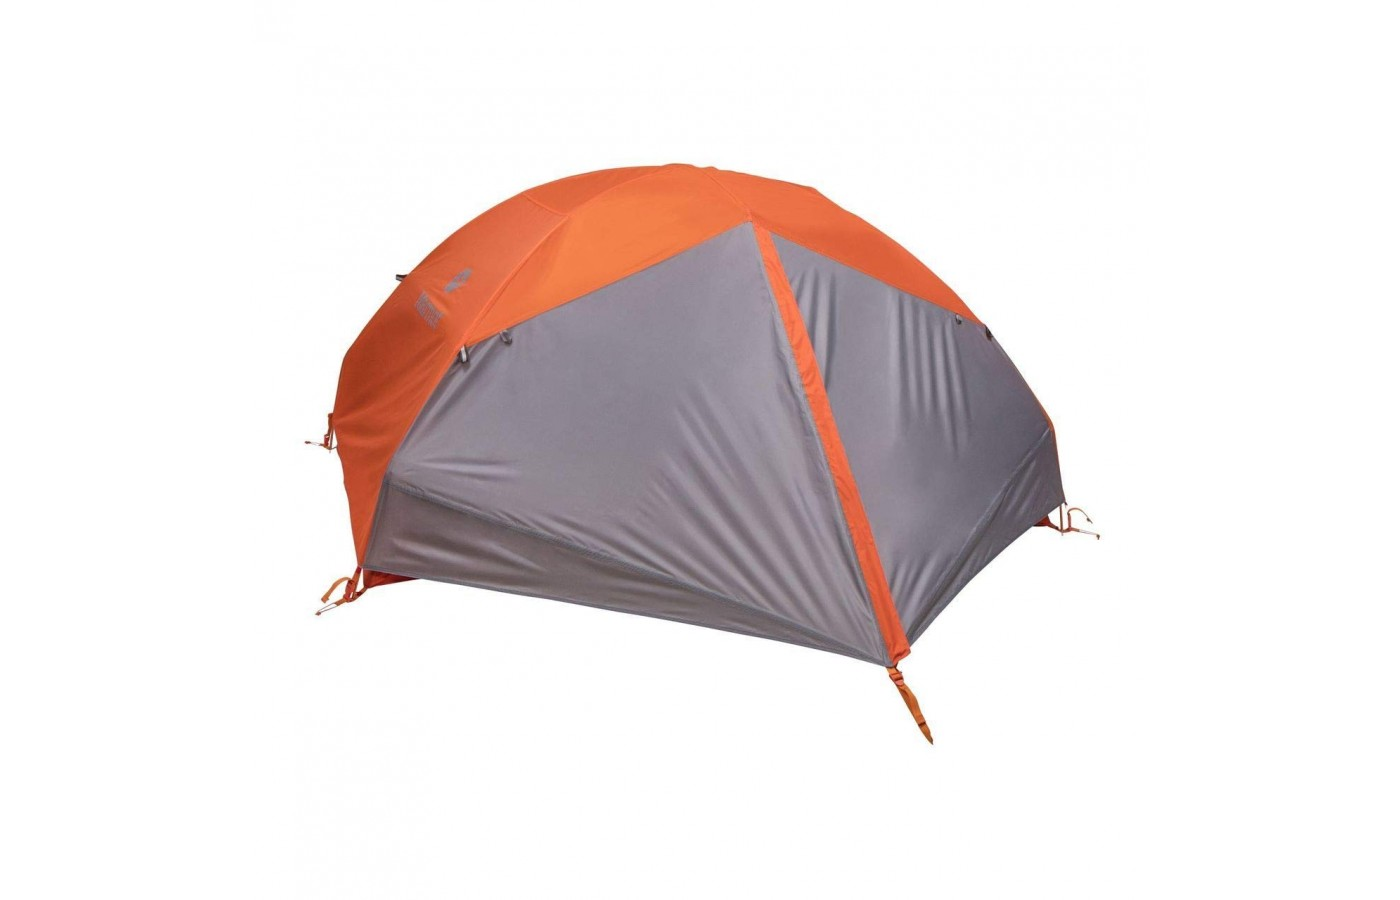 The tent can hold its own during cold and hot temperatures, strong winds, and downpours of rain.